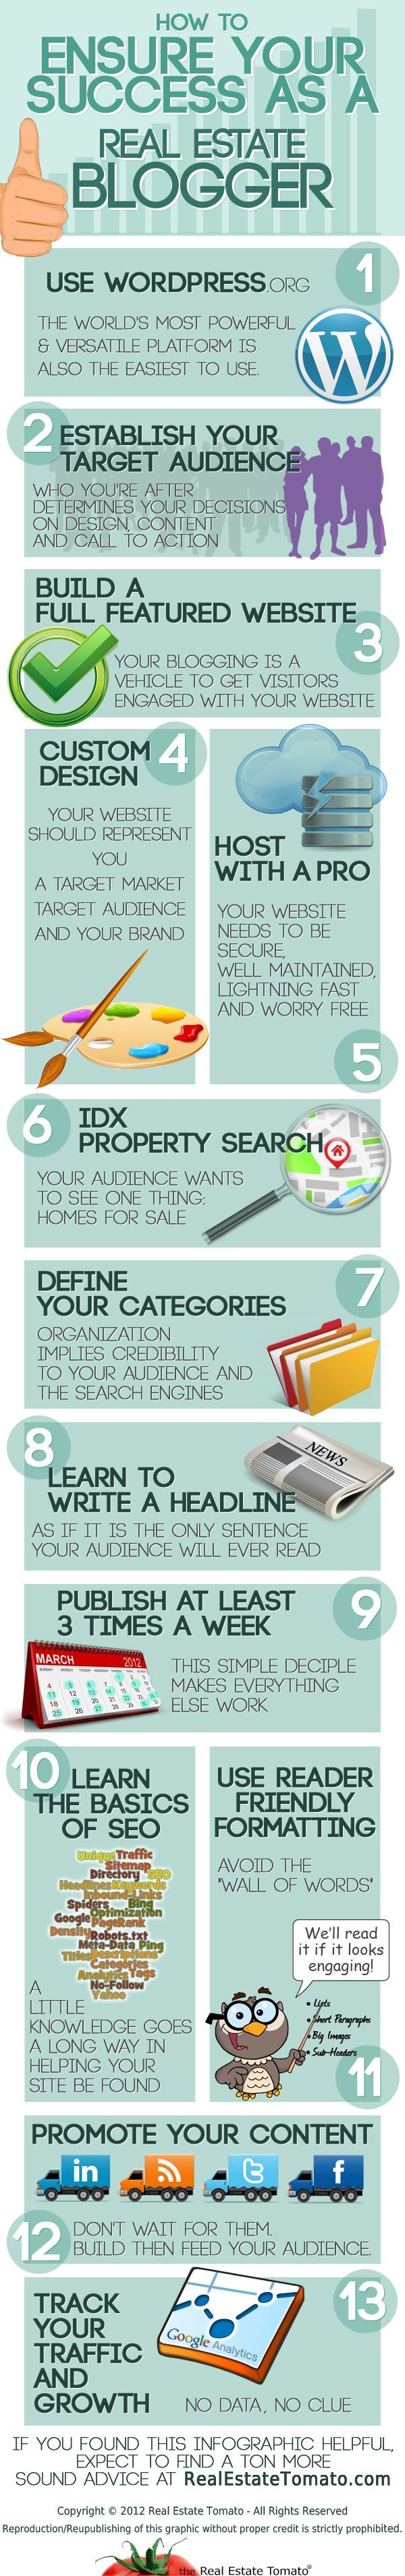 How To Ensure Your Success As A Real Estate Blogger – The Infographic #realestate